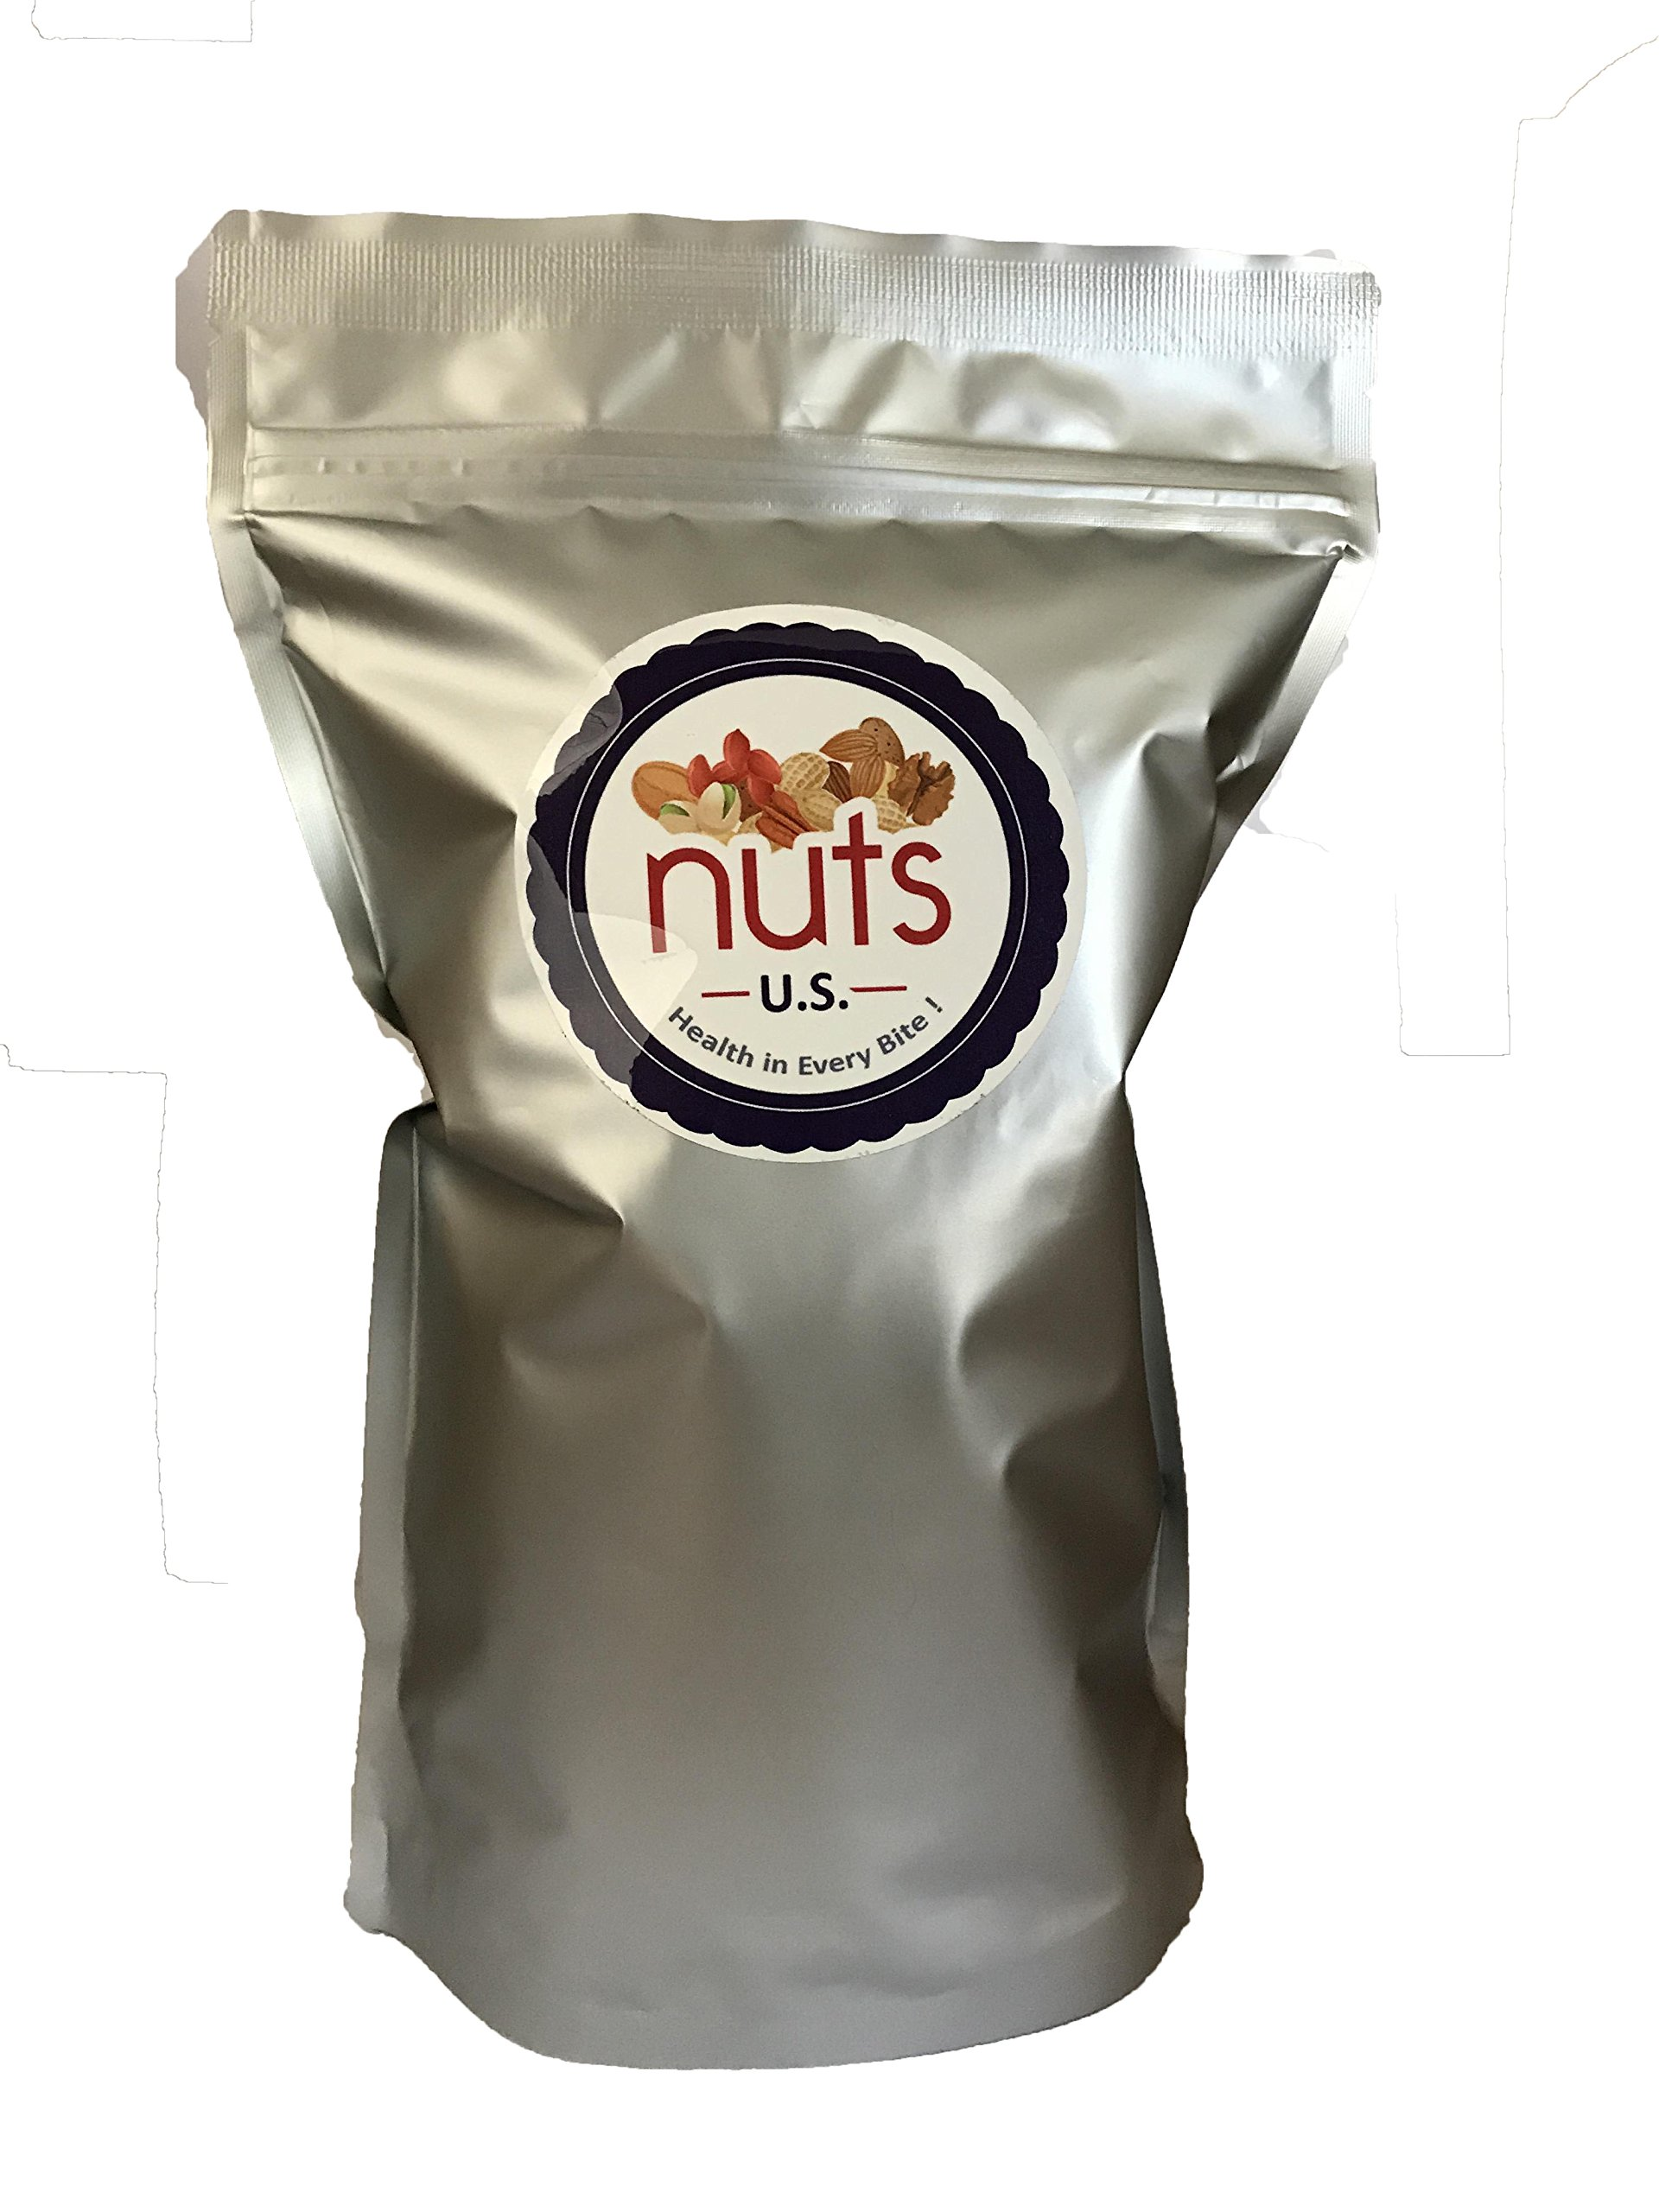 NUTS U.S. - Roasted, Unsalted, Blanched Turkish Hazelnuts (3 LB) by NUTS - U.S. - HEALTH IN EVERY BITE !